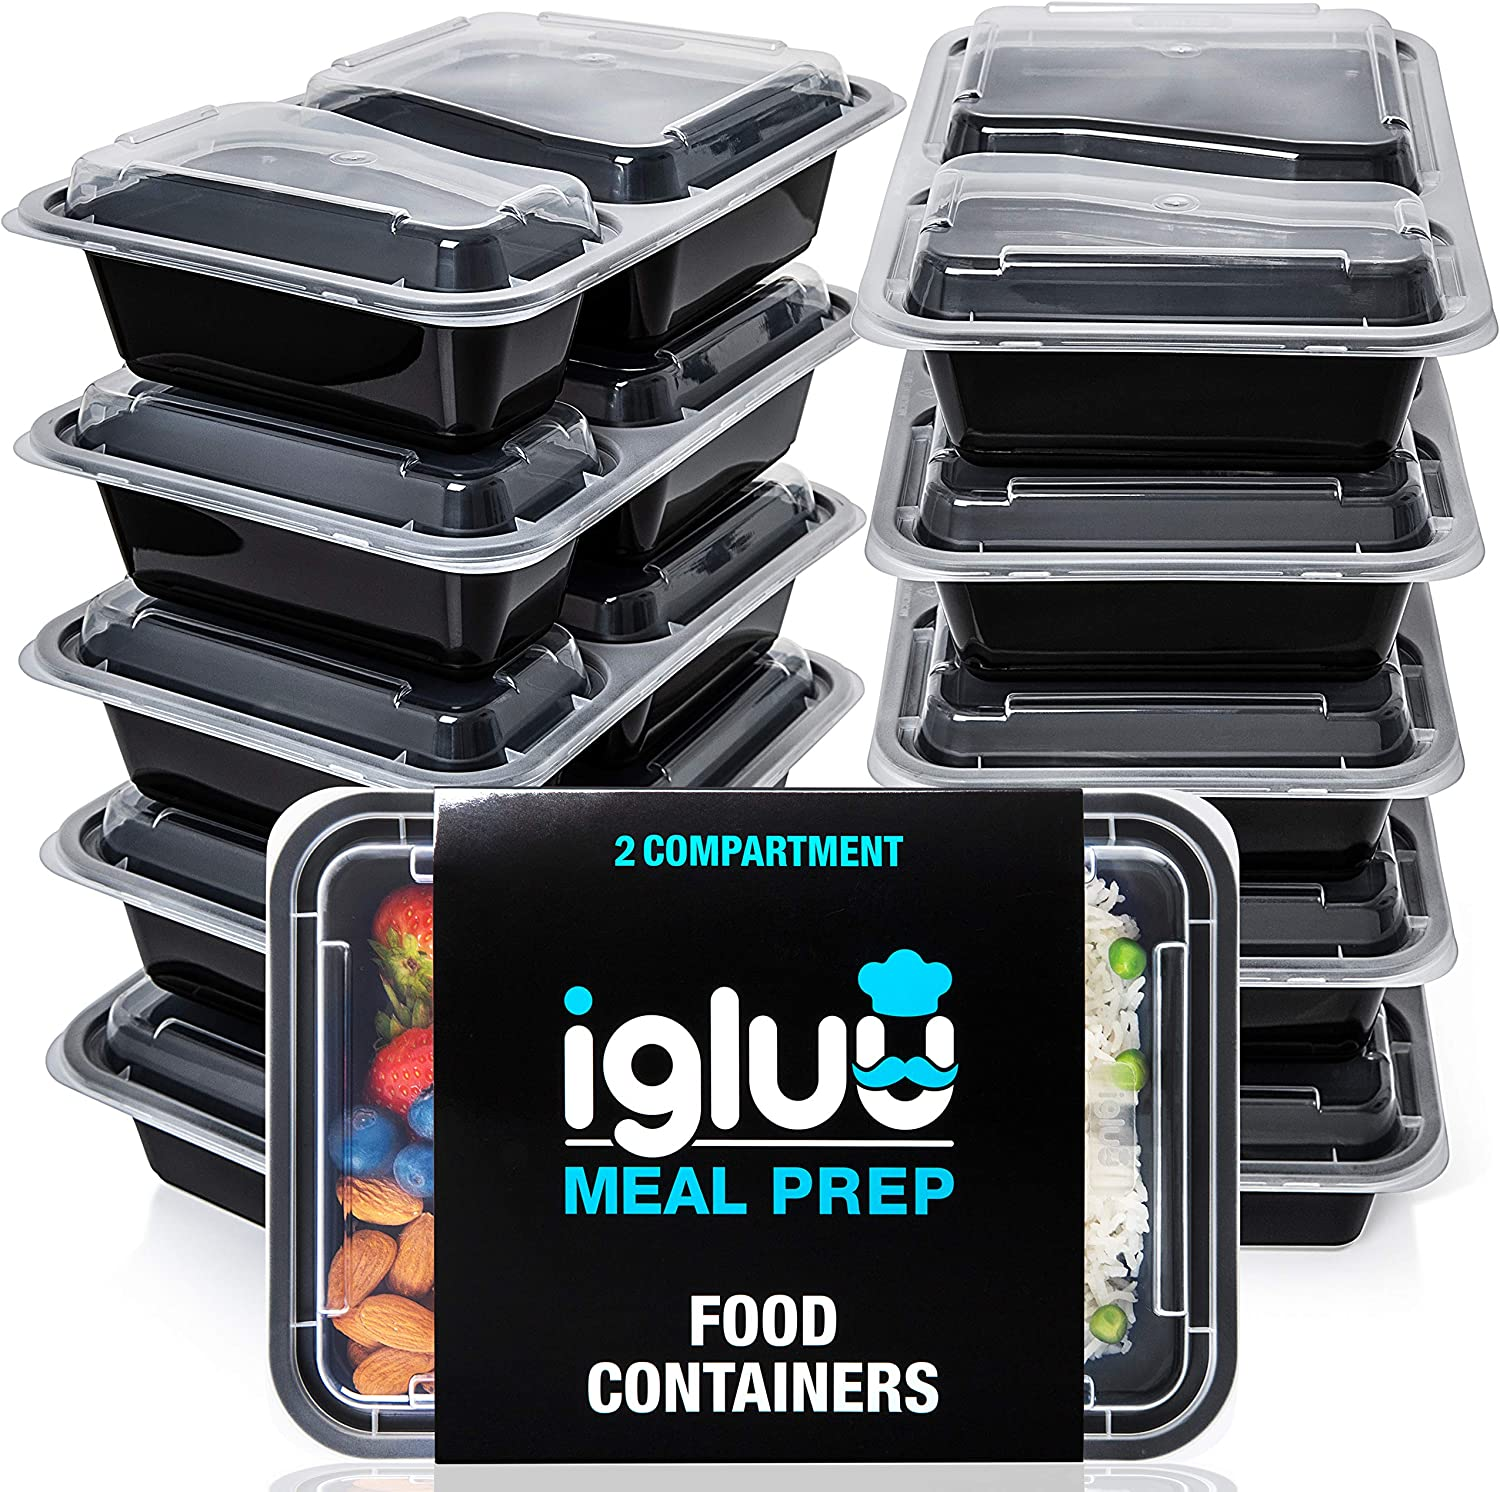 Igluu Meal Prep Containers [10 Pack] 2 Compartment with Airtight Lids - Plastic Food Storage Bento Box - BPA Free - Reusable Lunch Boxes - Microwavable, Freezer and Dishwasher Safe - Bonus eBook